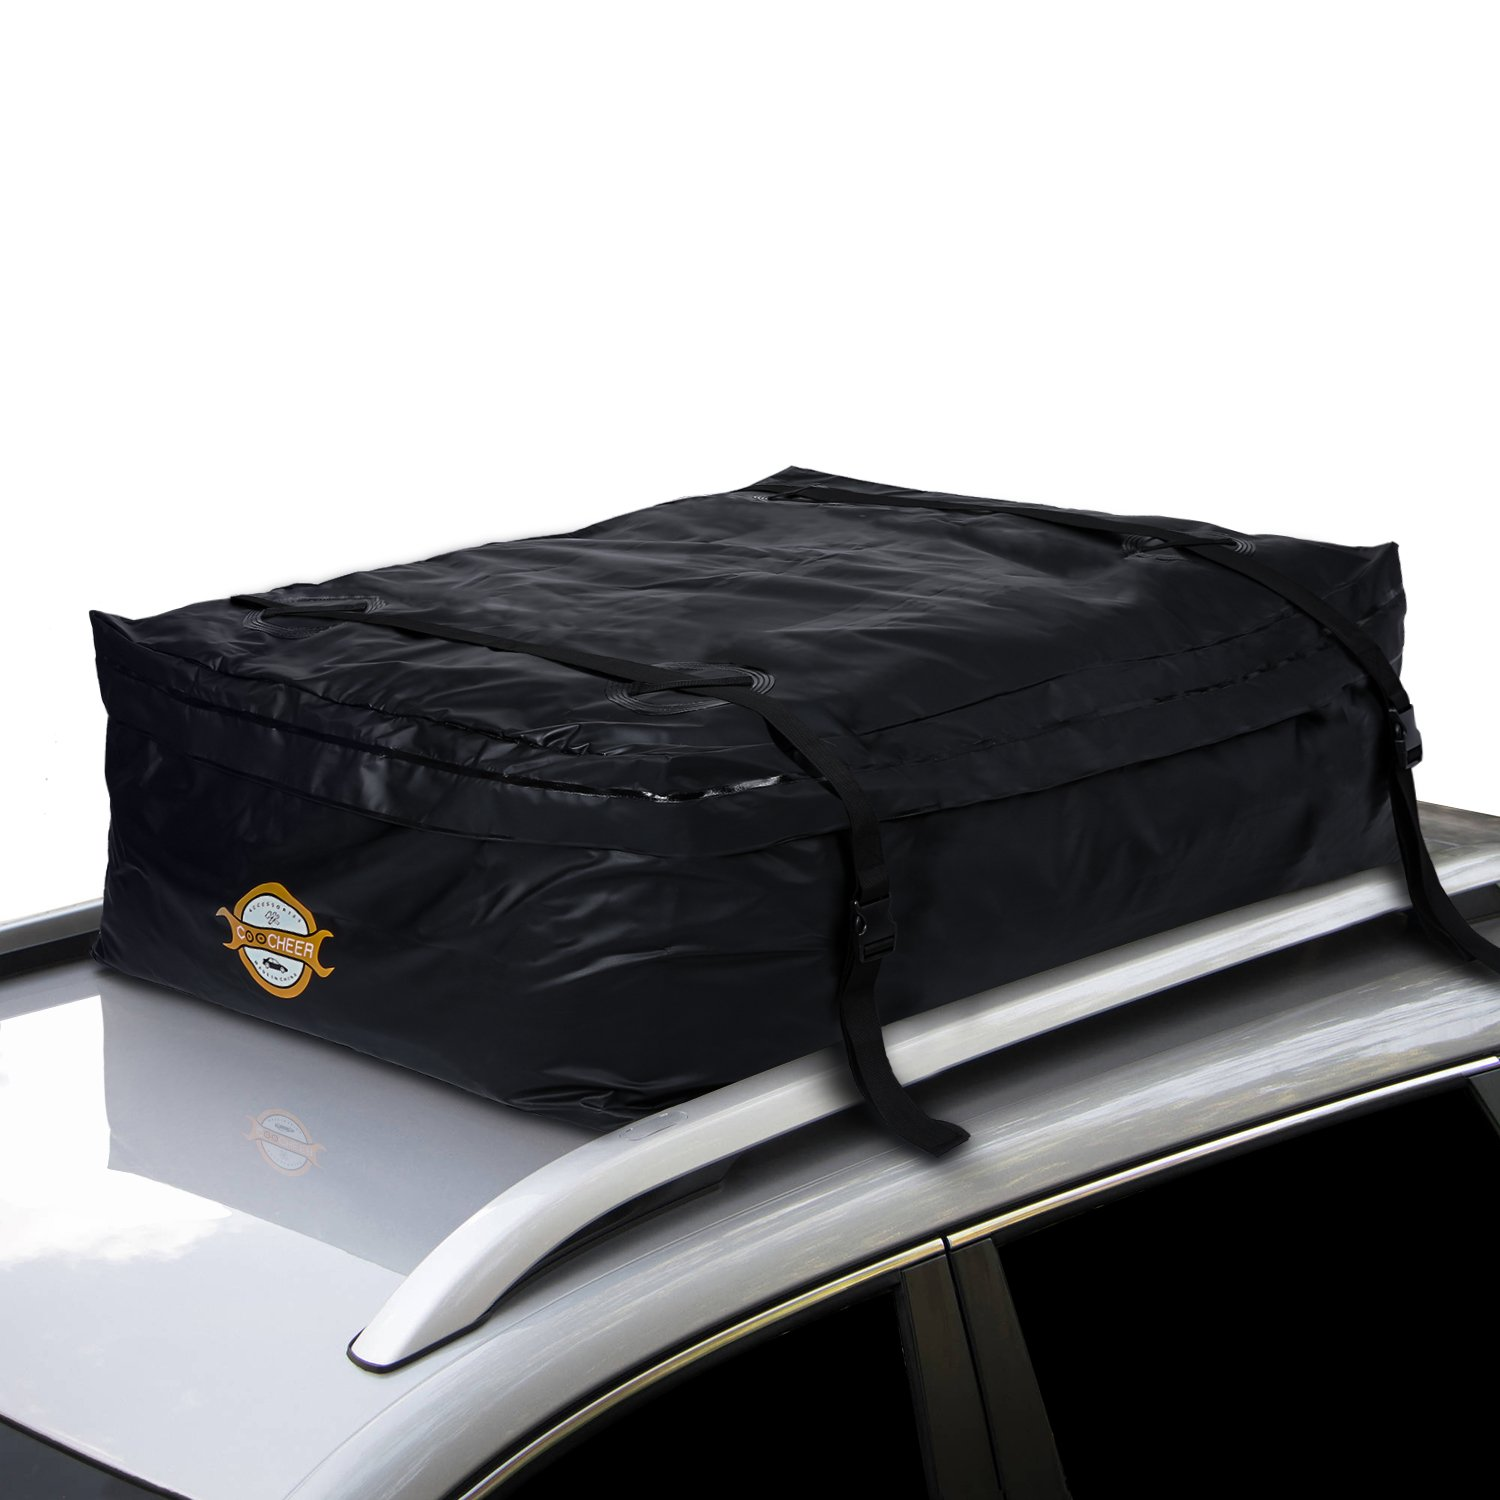 Adakiit Car Vehicles Waterproof Roof Top Cargo Carrier Luggage Travel Storage Bag with Wide Straps, Best for Traveling, Cars, Vans, SUVs